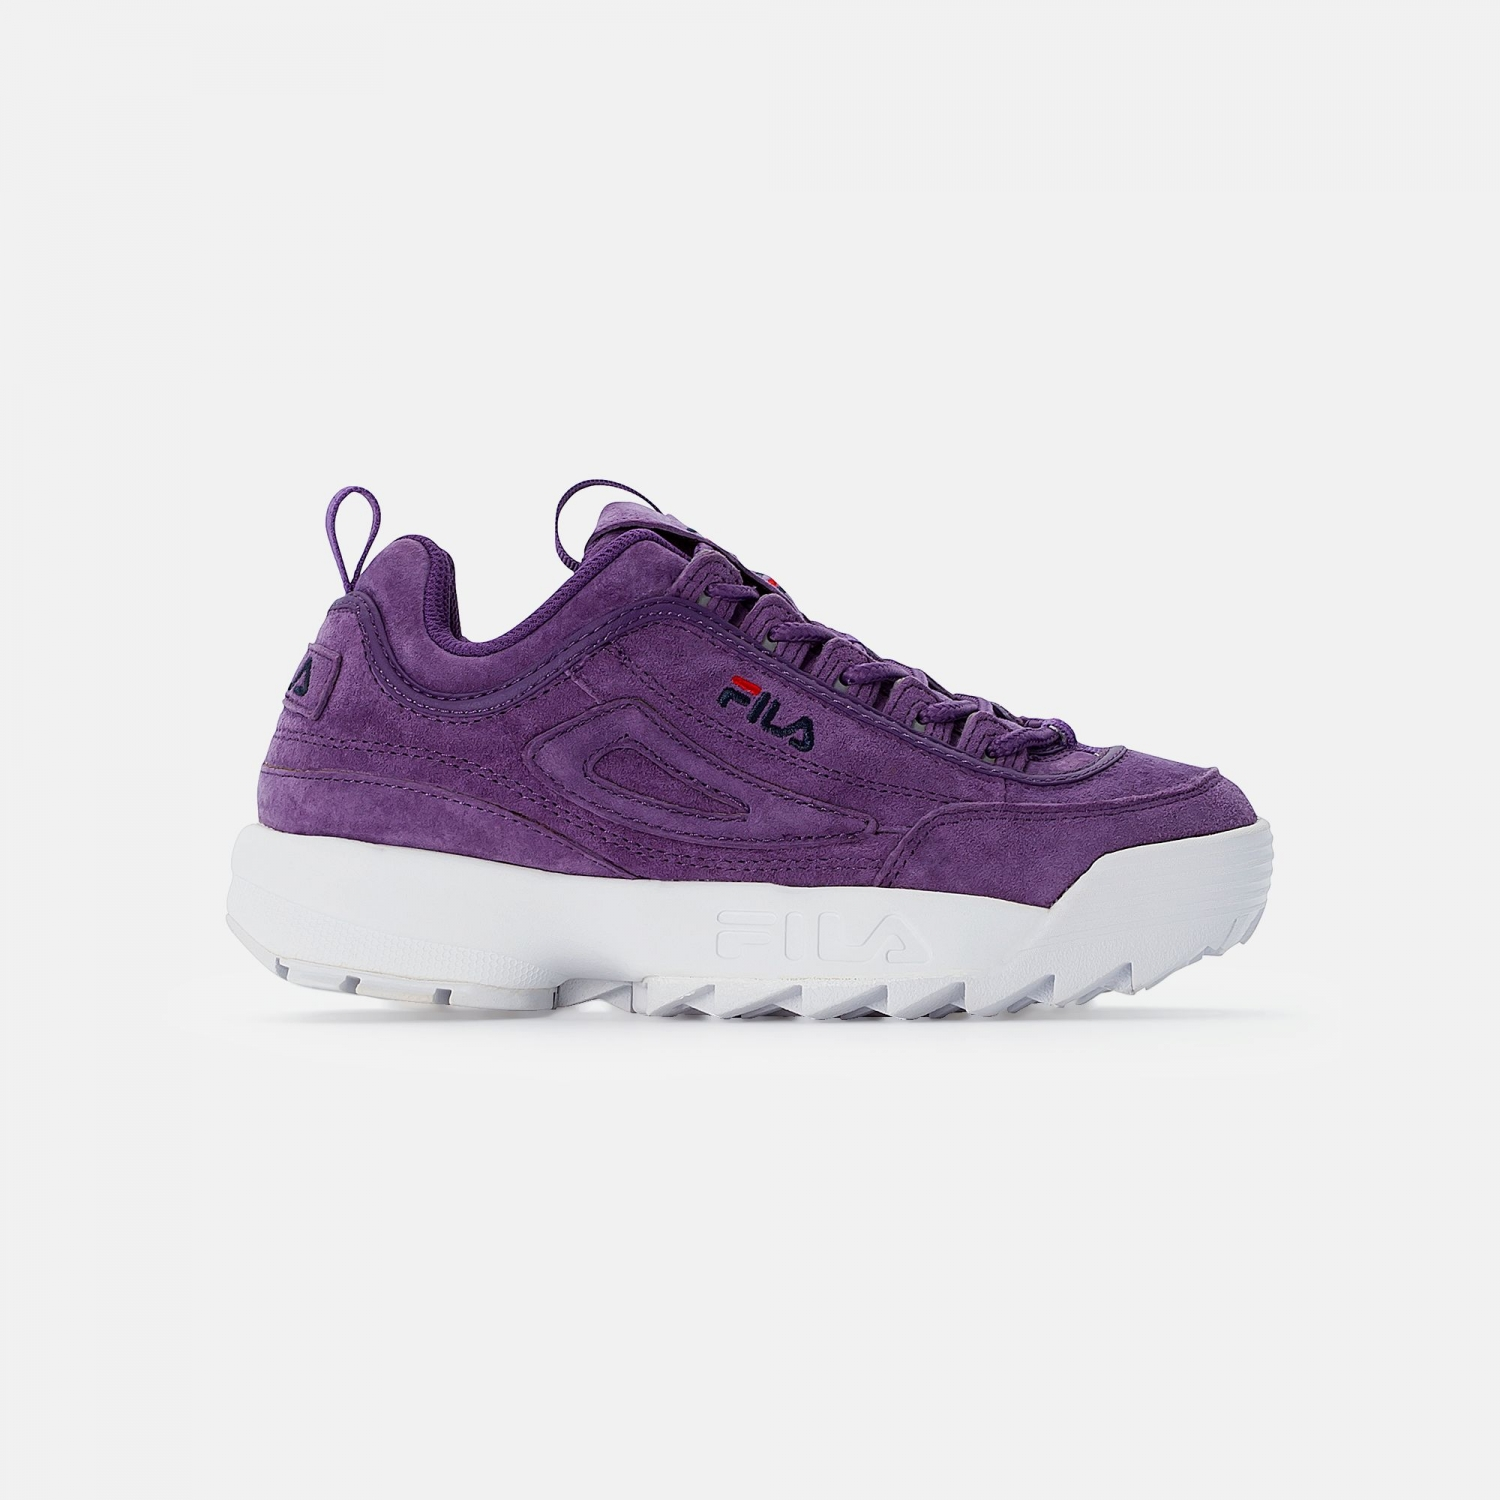 Fila Disruptor S Low Wmn tillandsia-purple Bild 1